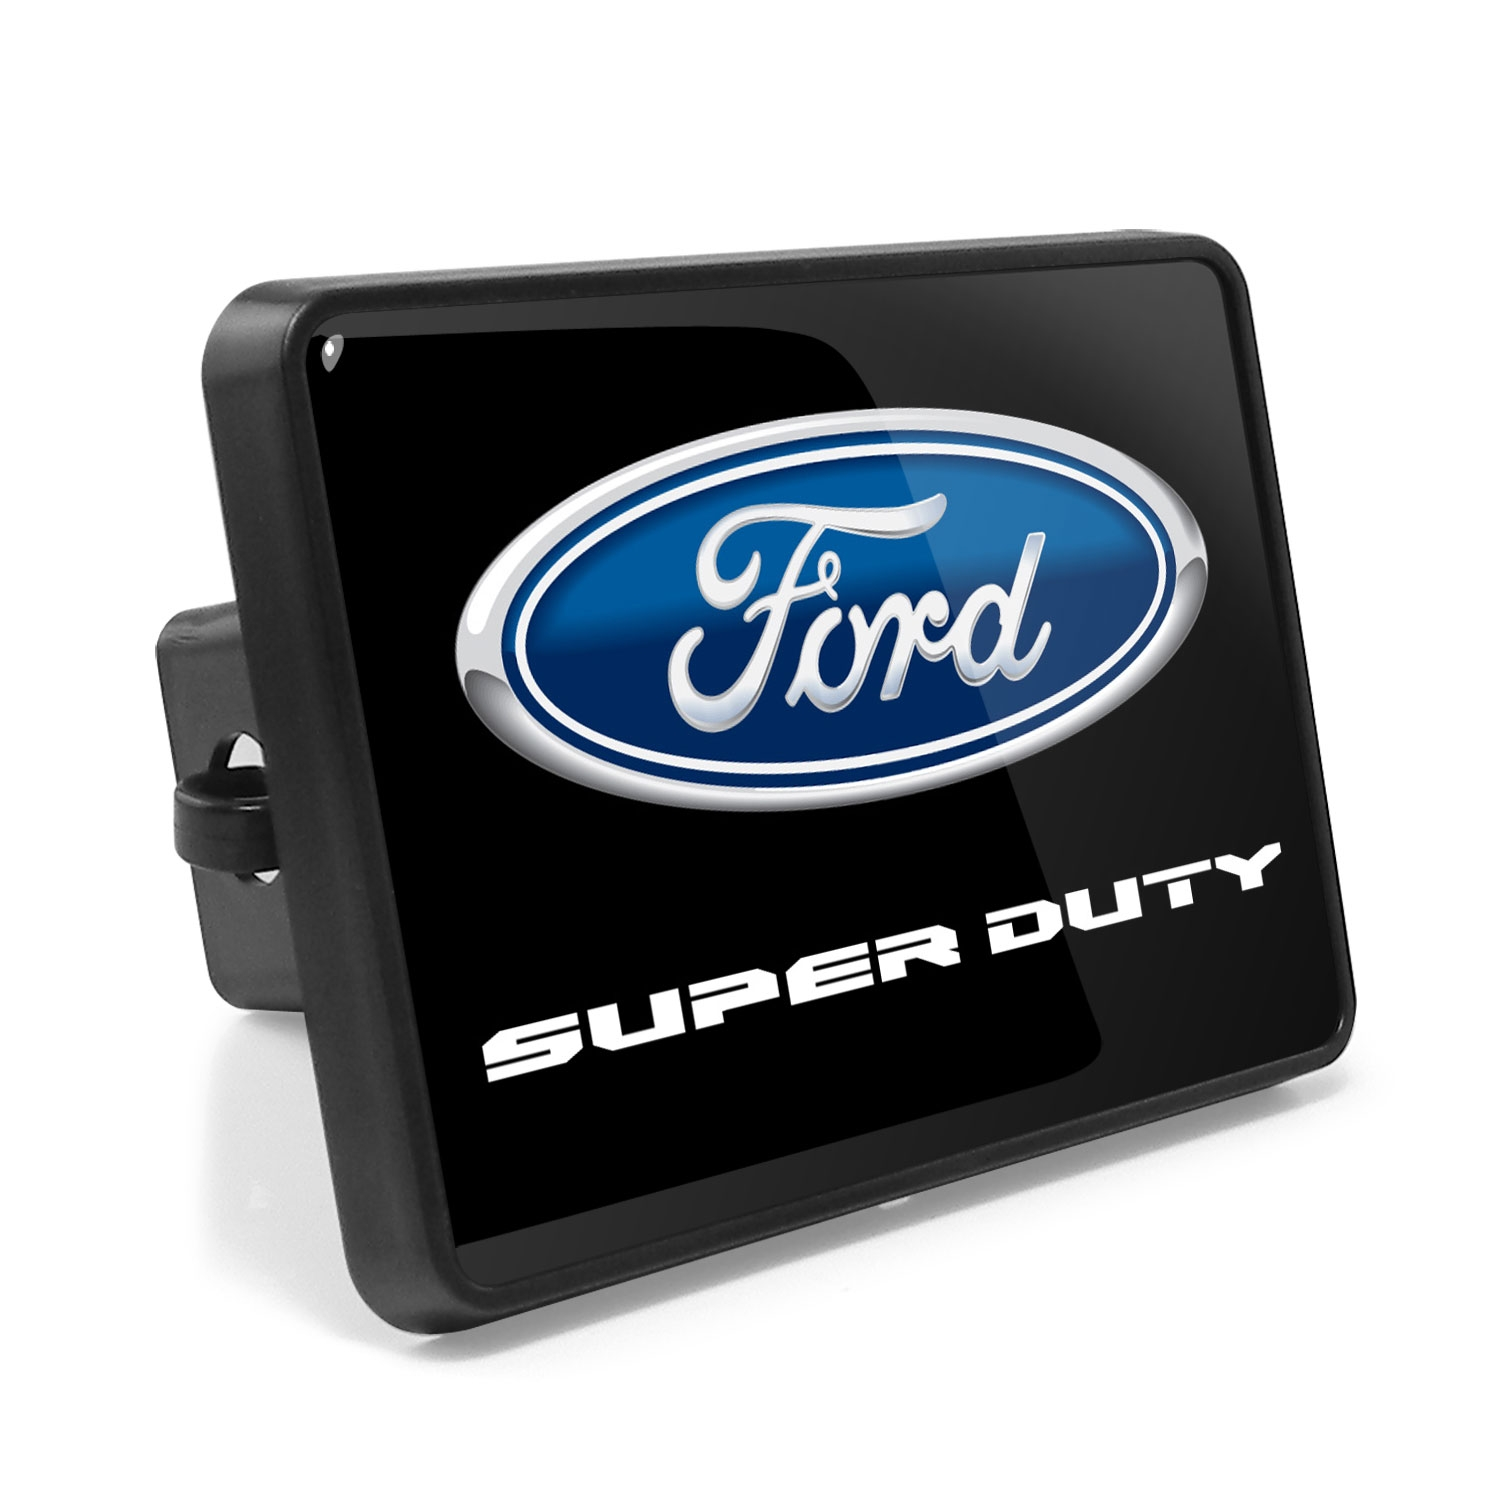 Ford F-Series Super Duty 2016 to 2017 UV Graphic Metal Plate on ABS Plastic 2 inch Tow Hitch Cover